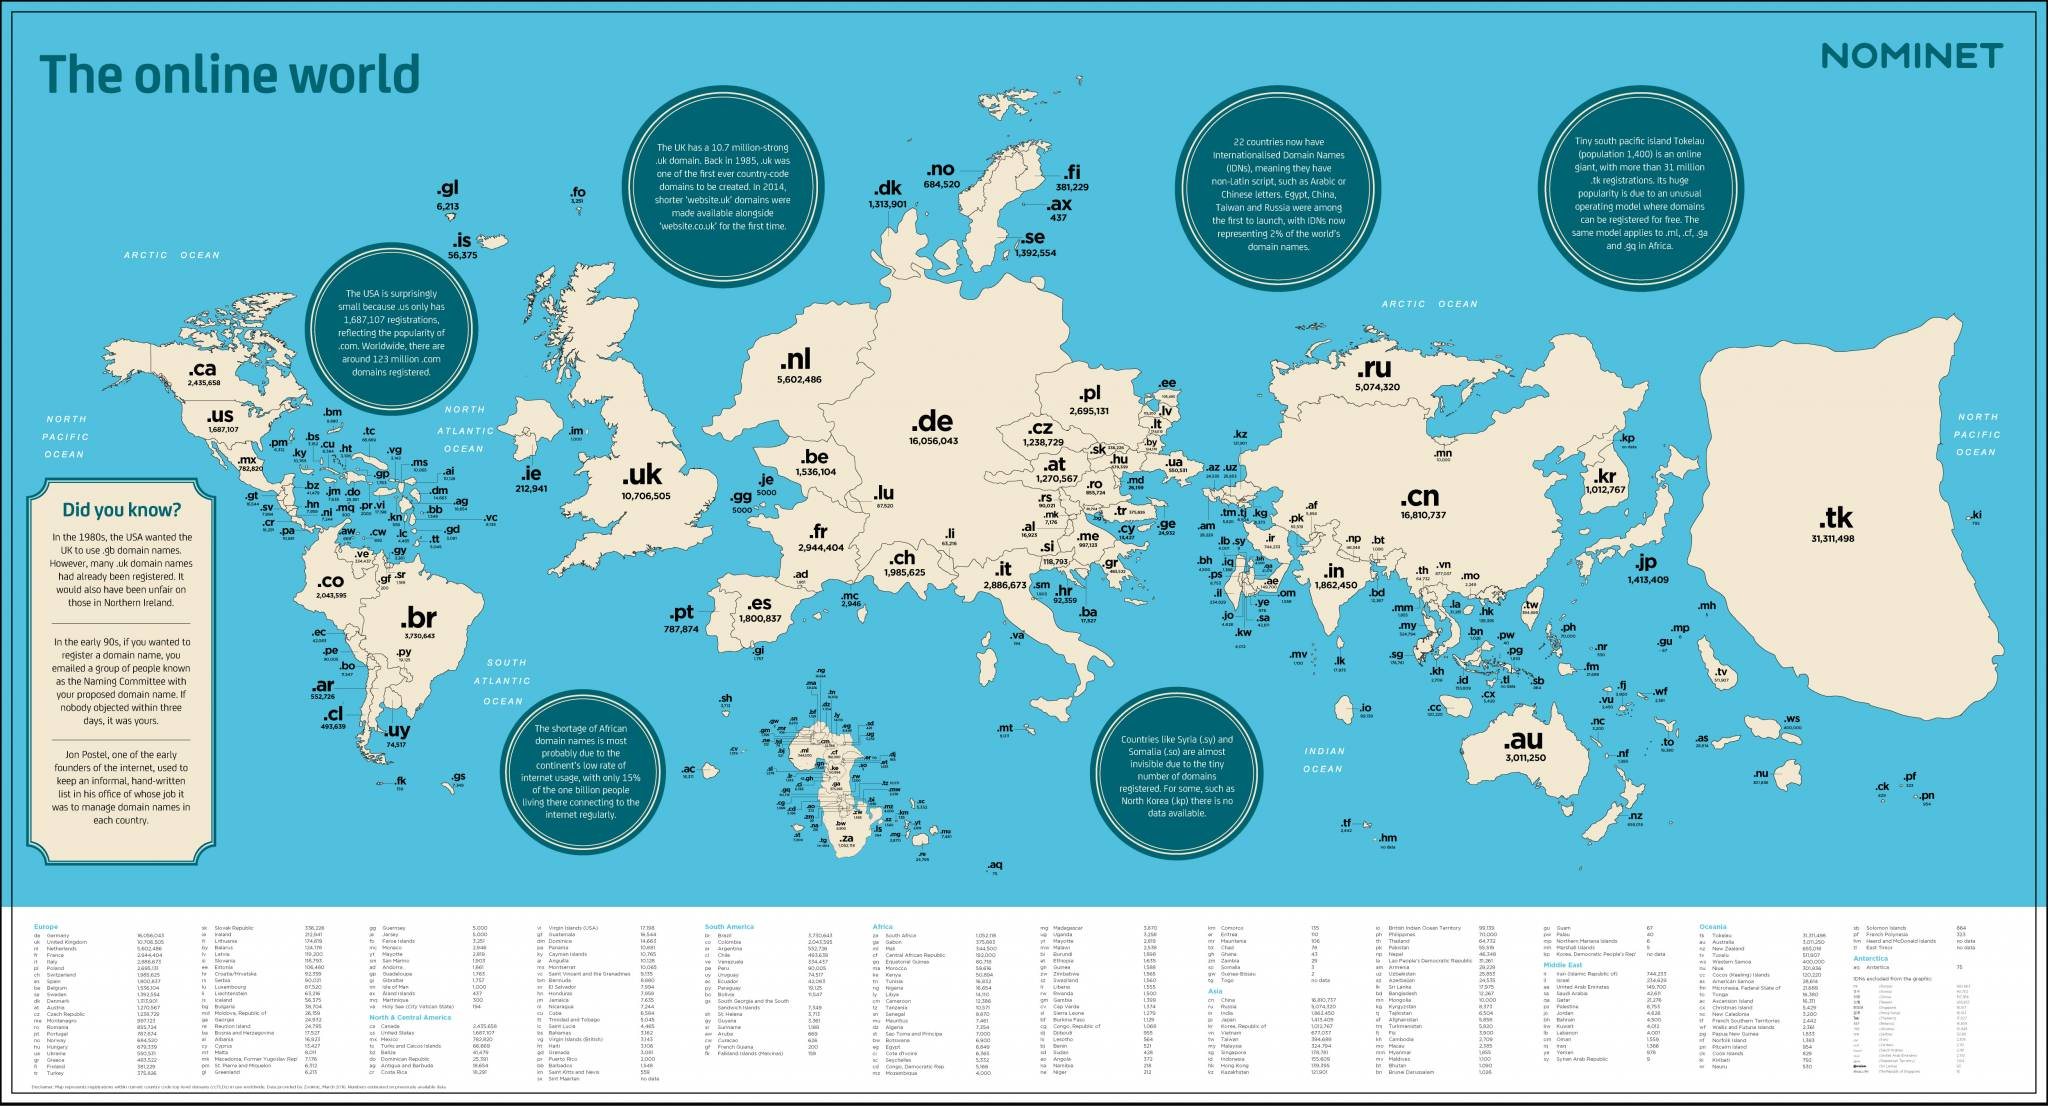 Uk In Map Of World.Mapping The Online World Nominet